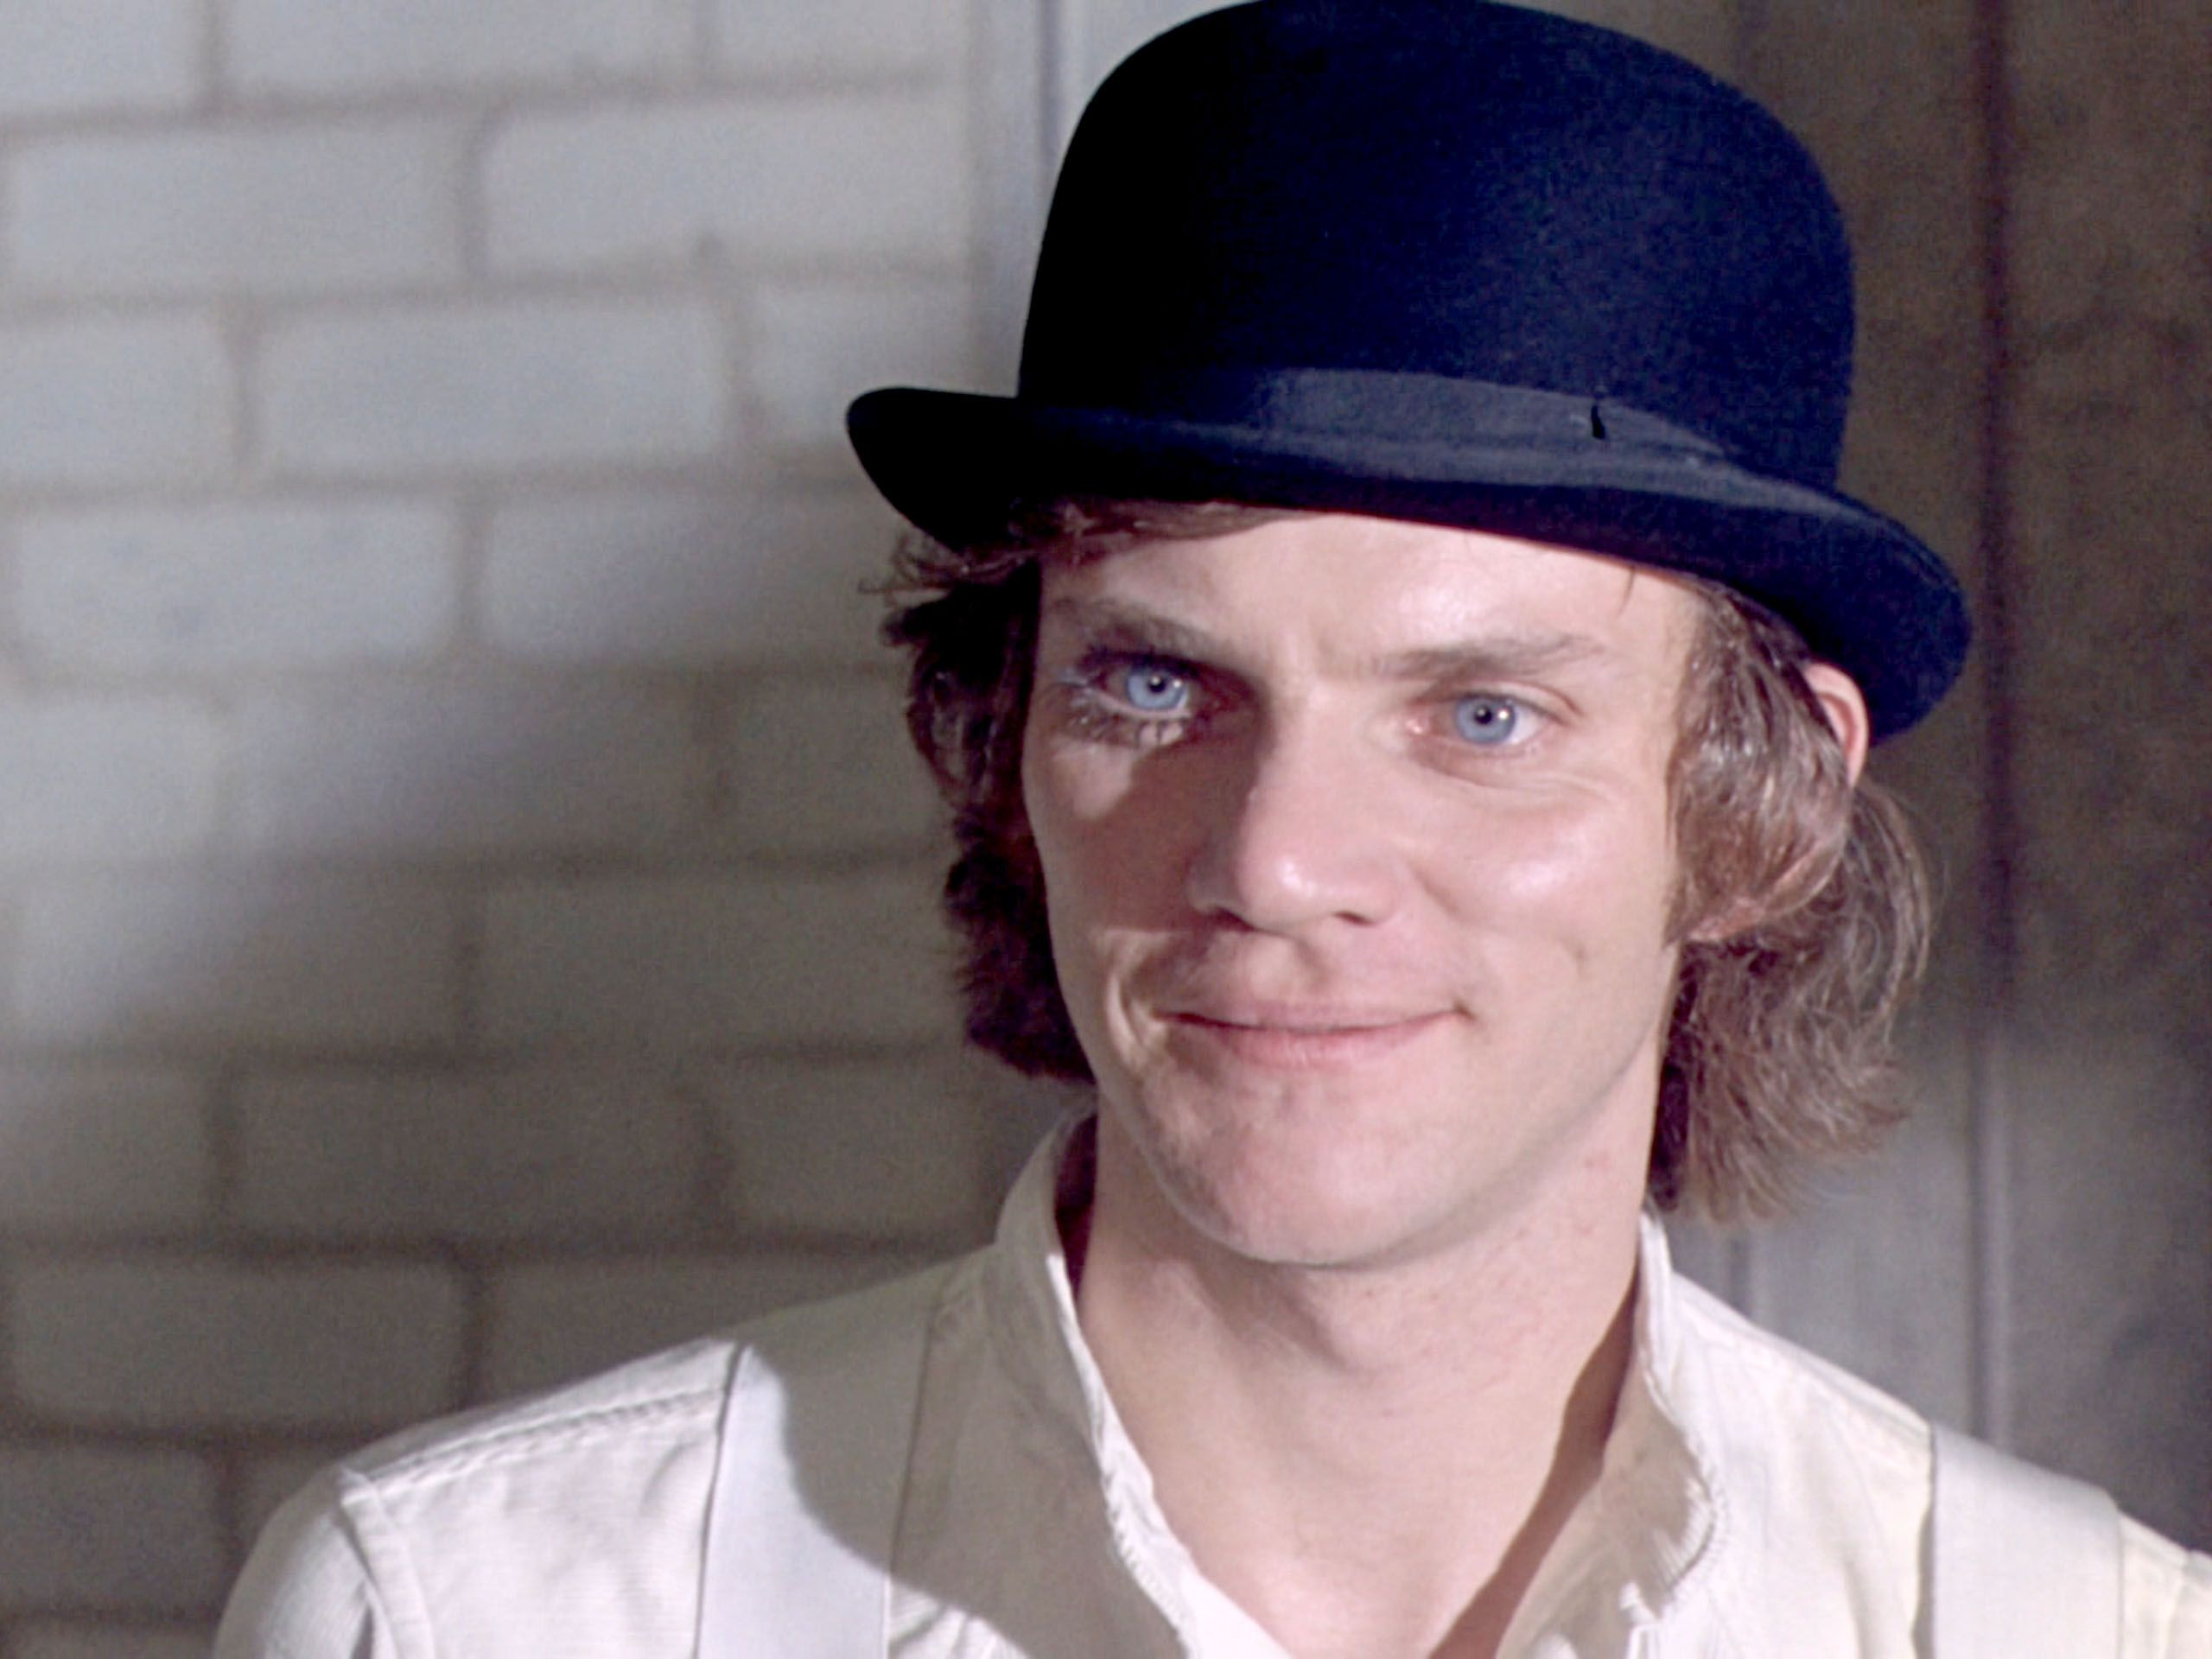 malcolm mcdowell heroesmalcolm mcdowell evan peters, malcolm mcdowell movies, malcolm mcdowell height, malcolm mcdowell wife, malcolm mcdowell filmleri, malcolm mcdowell music video, malcolm mcdowell horoscope, malcolm mcdowell about clockwork orange, malcolm mcdowell heroes, malcolm mcdowell singing in the rain, malcolm mcdowell twitter, malcolm mcdowell wikipedia, malcolm mcdowell instagram, malcolm mcdowell if, malcolm mcdowell facebook, malcolm mcdowell 31, malcolm mcdowell beatles, malcolm mcdowell singer, malcolm mcdowell south park, malcolm mcdowell actor